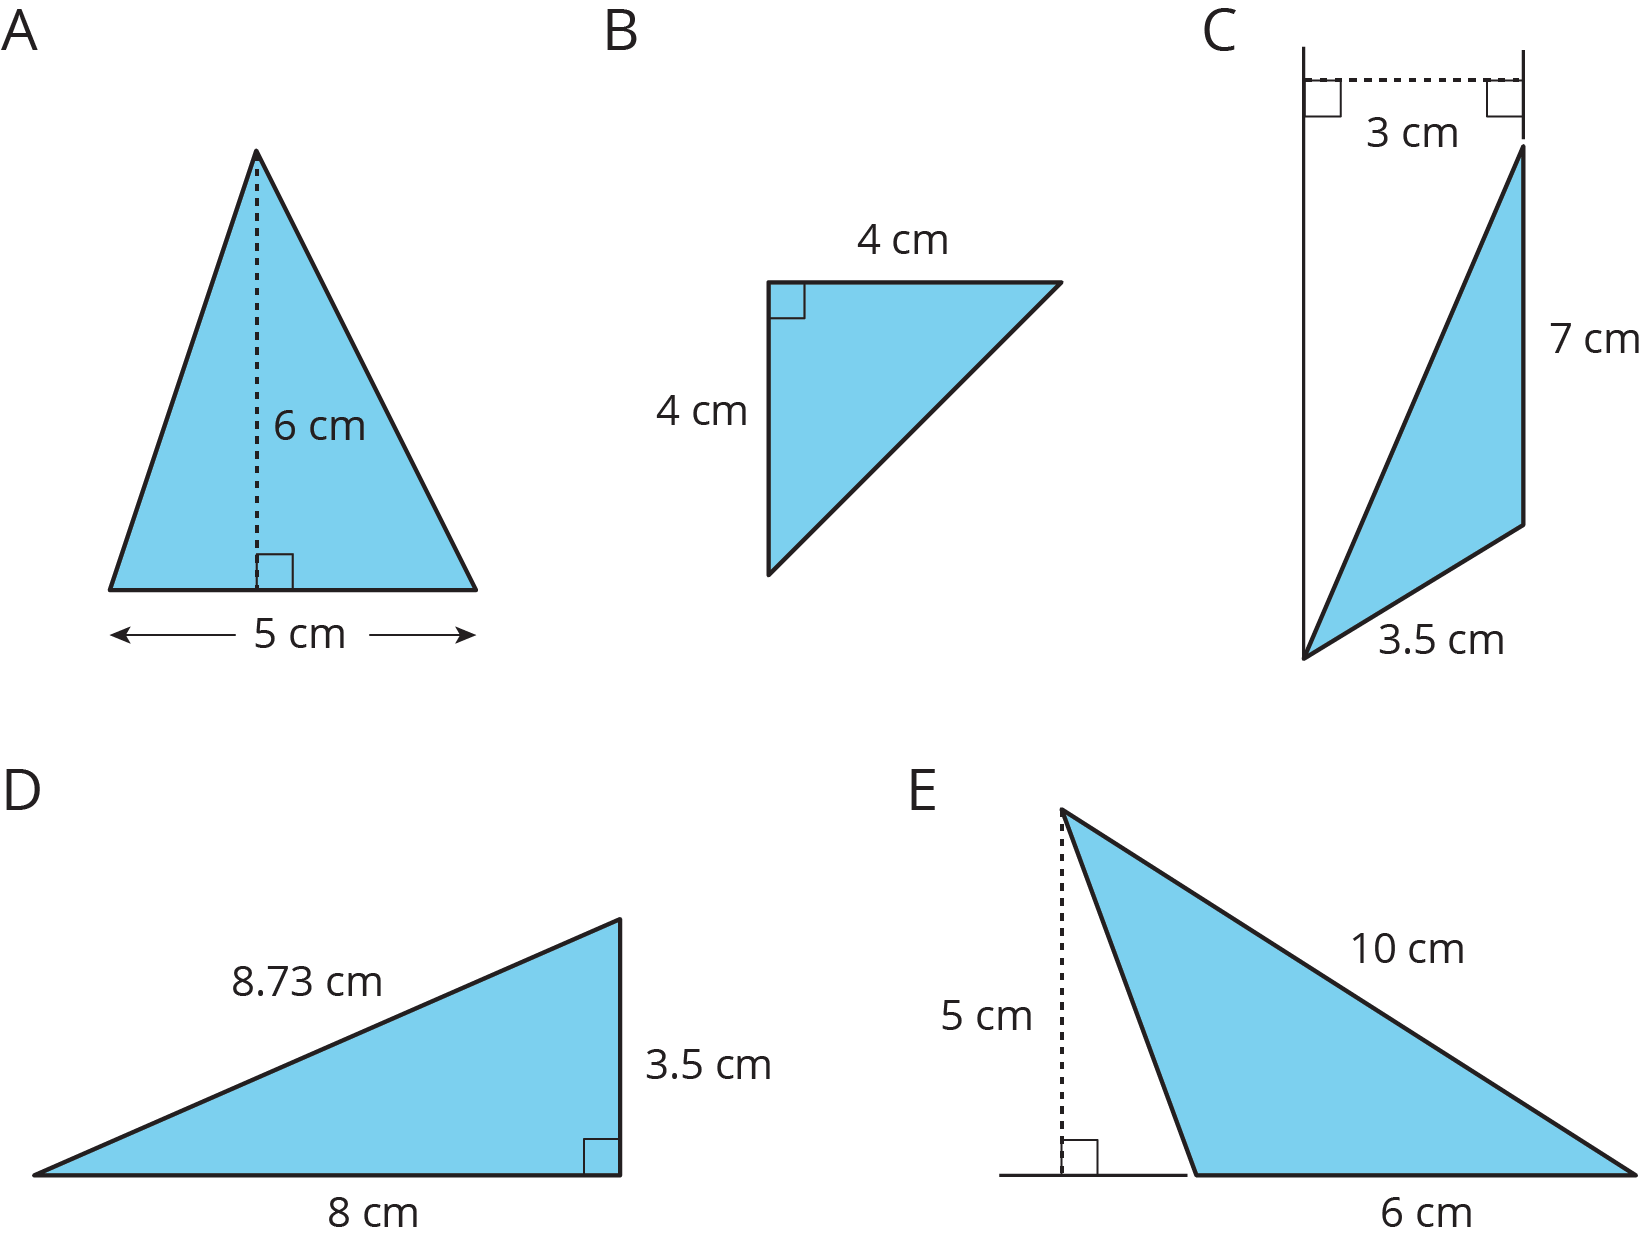 Lesson 9: Formula for the Area of a Triangle